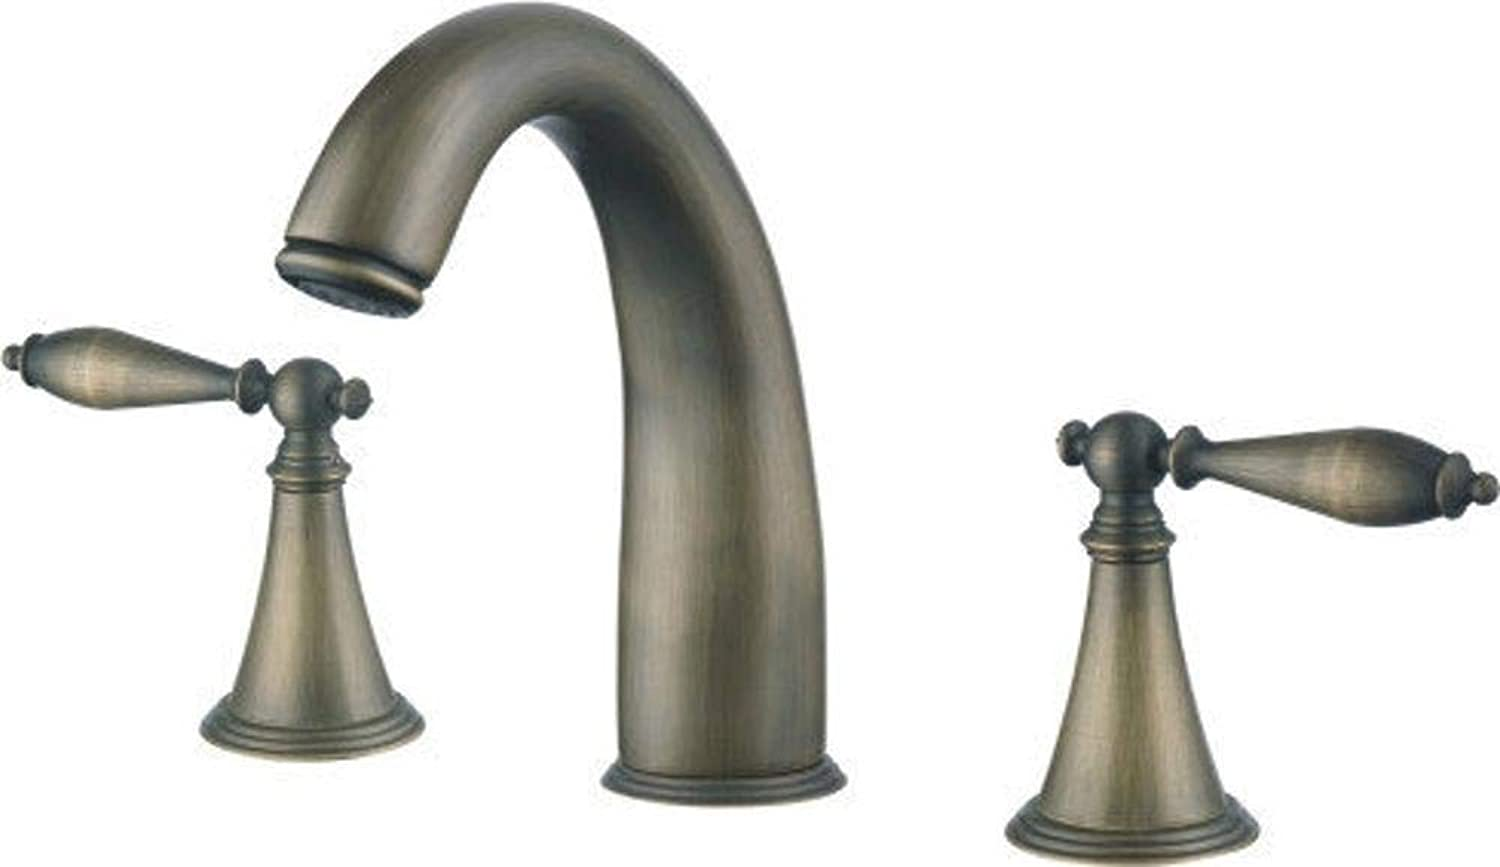 Lxj Faucet hot and cold water basin faucet washbasin faucet basin faucet three hole basin faucet